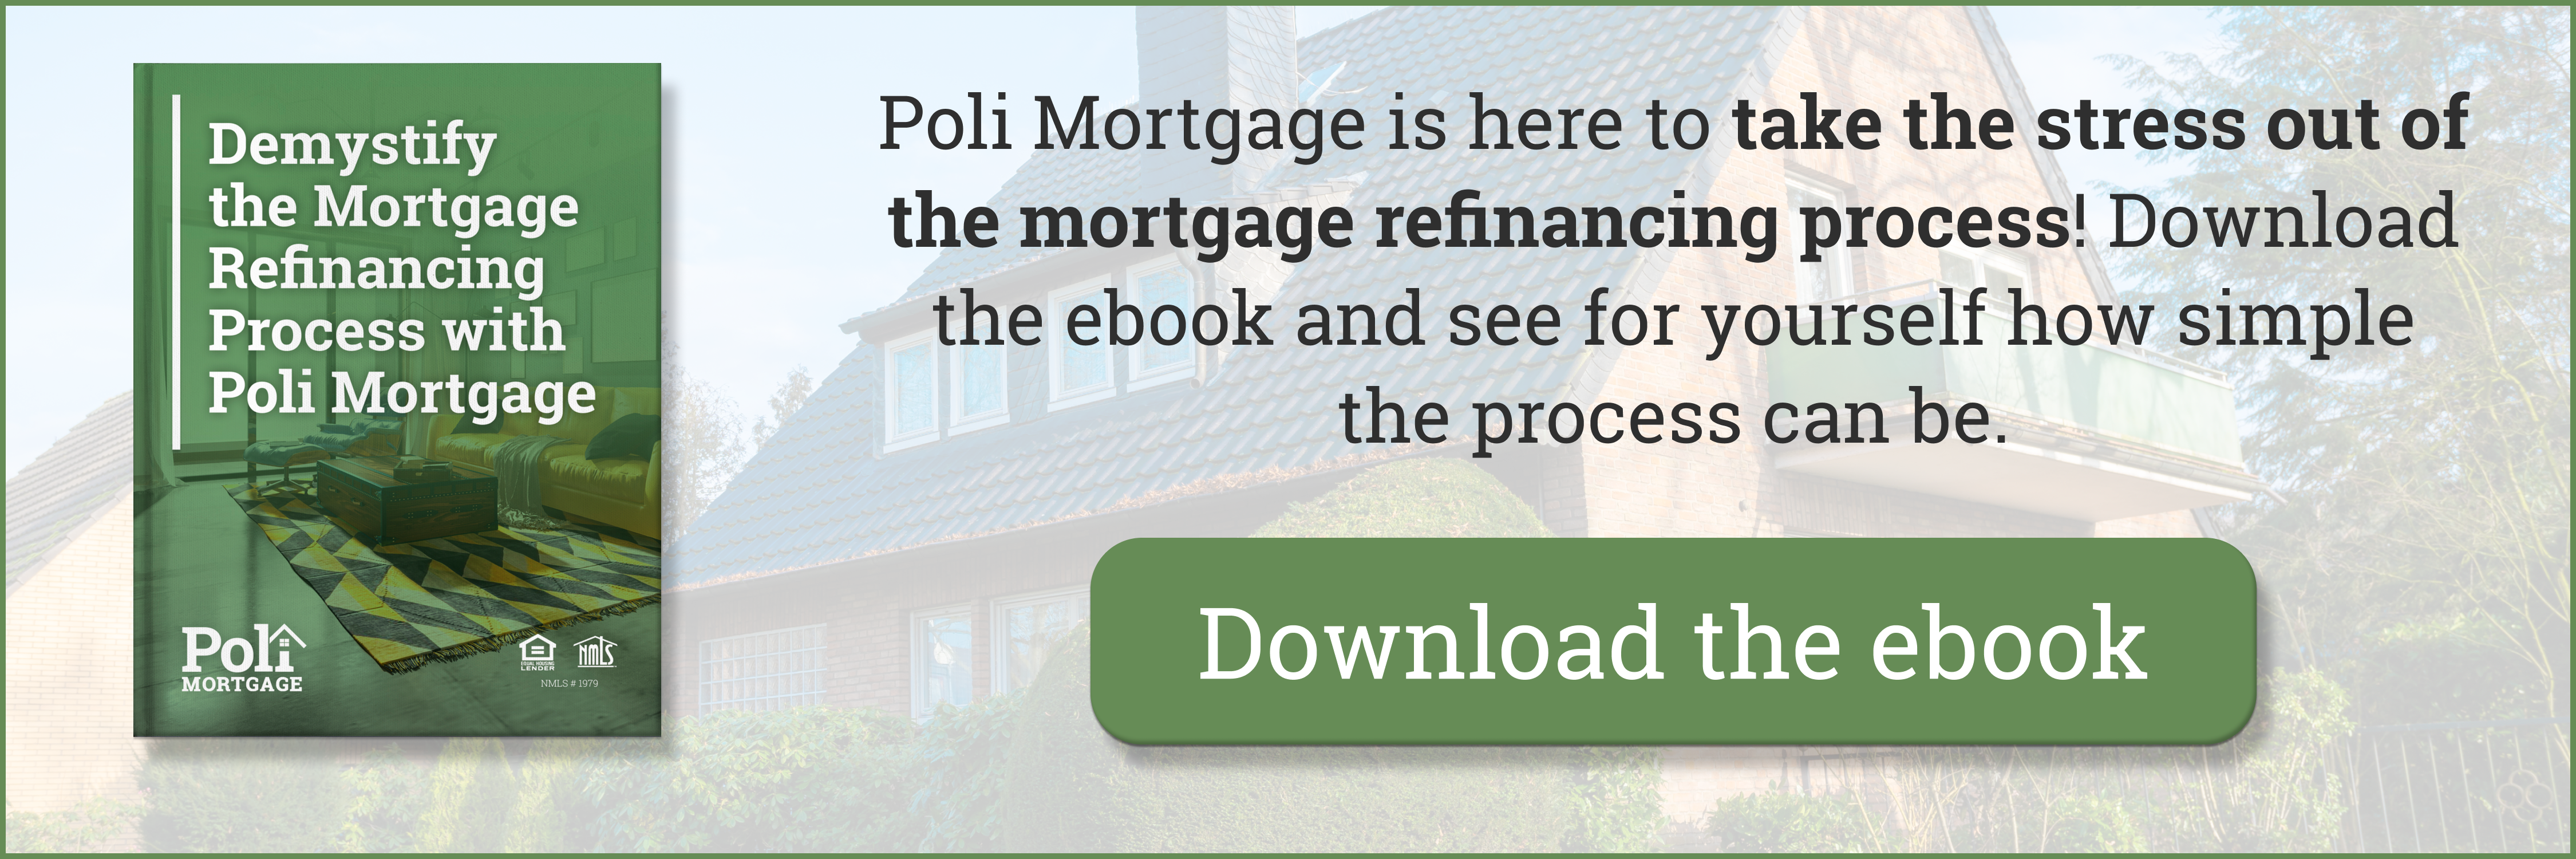 BLOG Demystify the Mortgage Refinancing Process